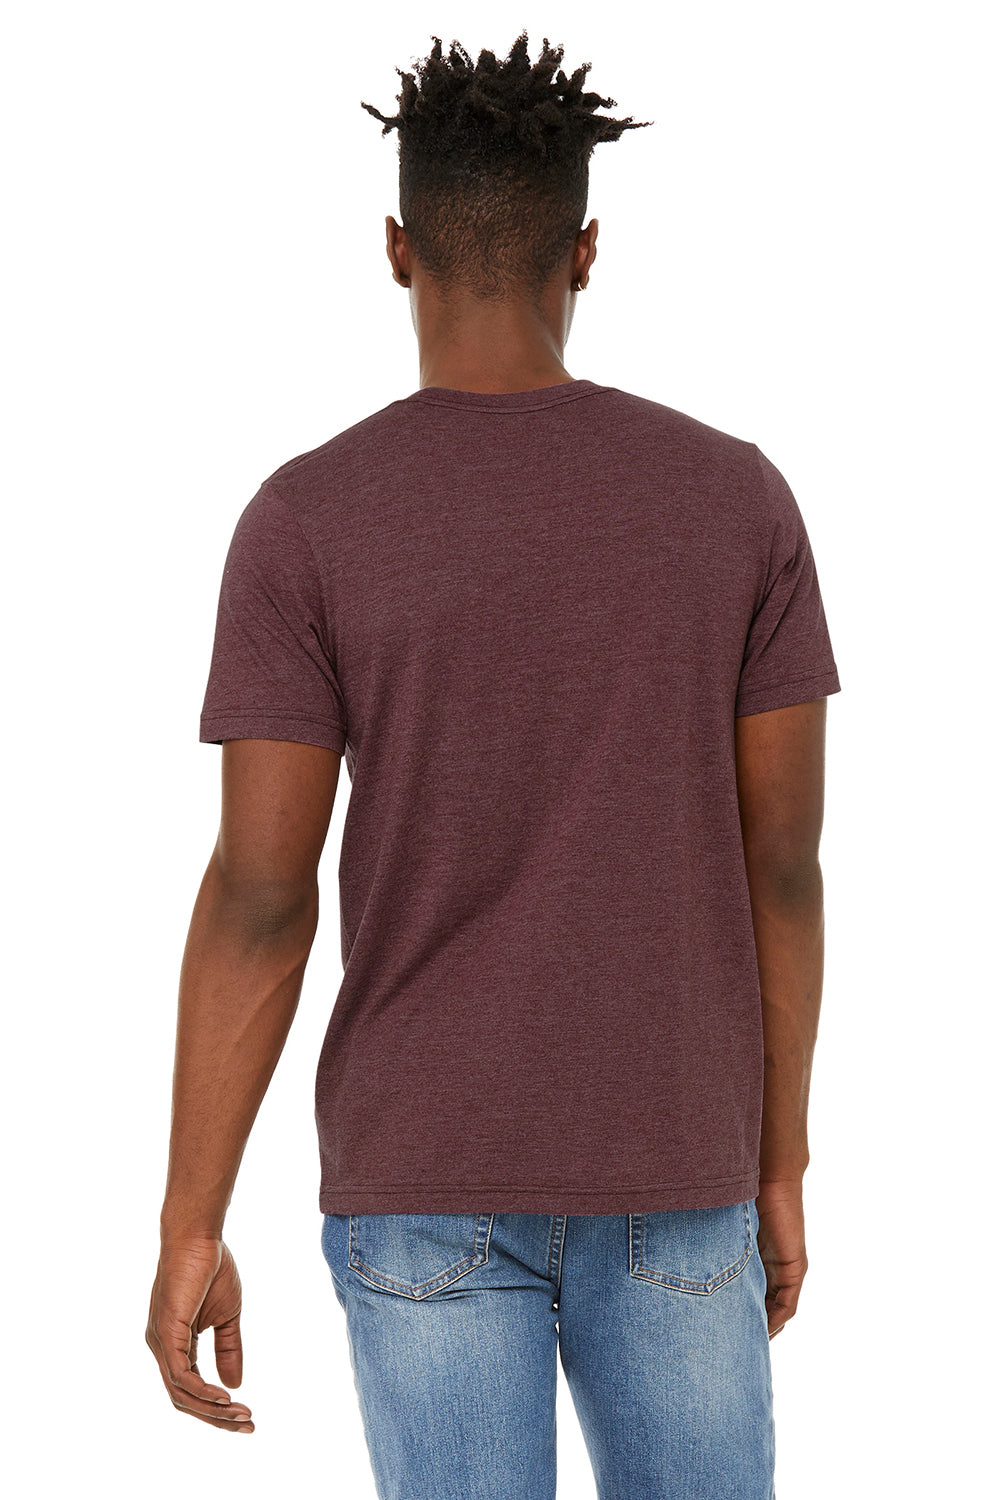 Bella + Canvas BC3301 Jersey Short Sleeve Crewneck T-Shirt Heather Maroon Back